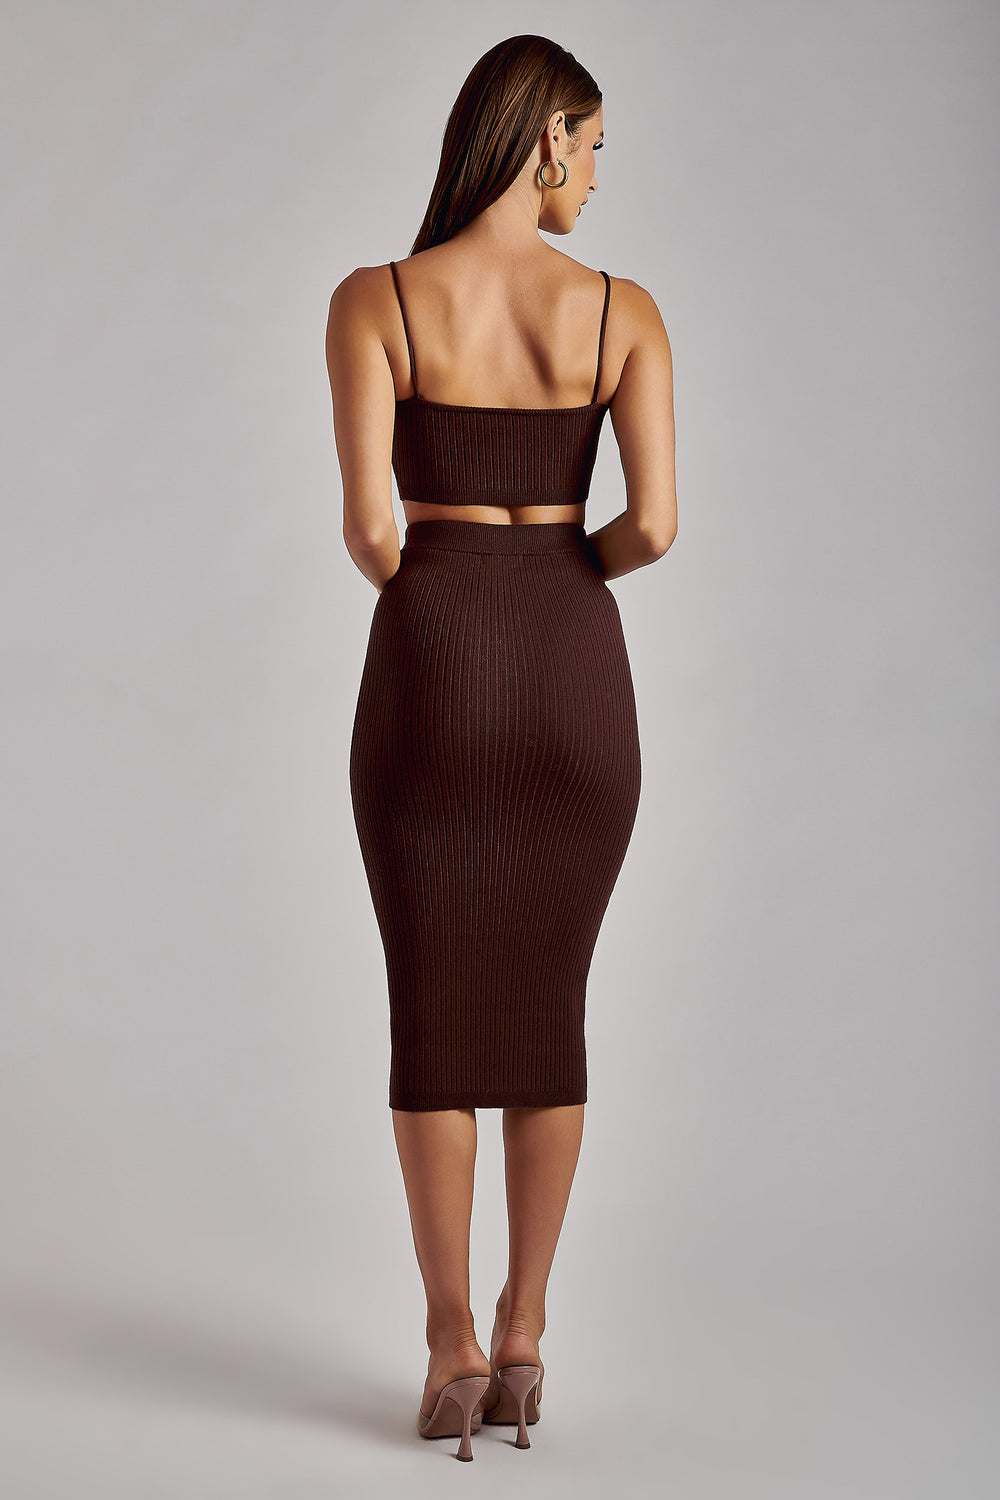 Wren Ribbed Midaxi Skirt - Chocolate